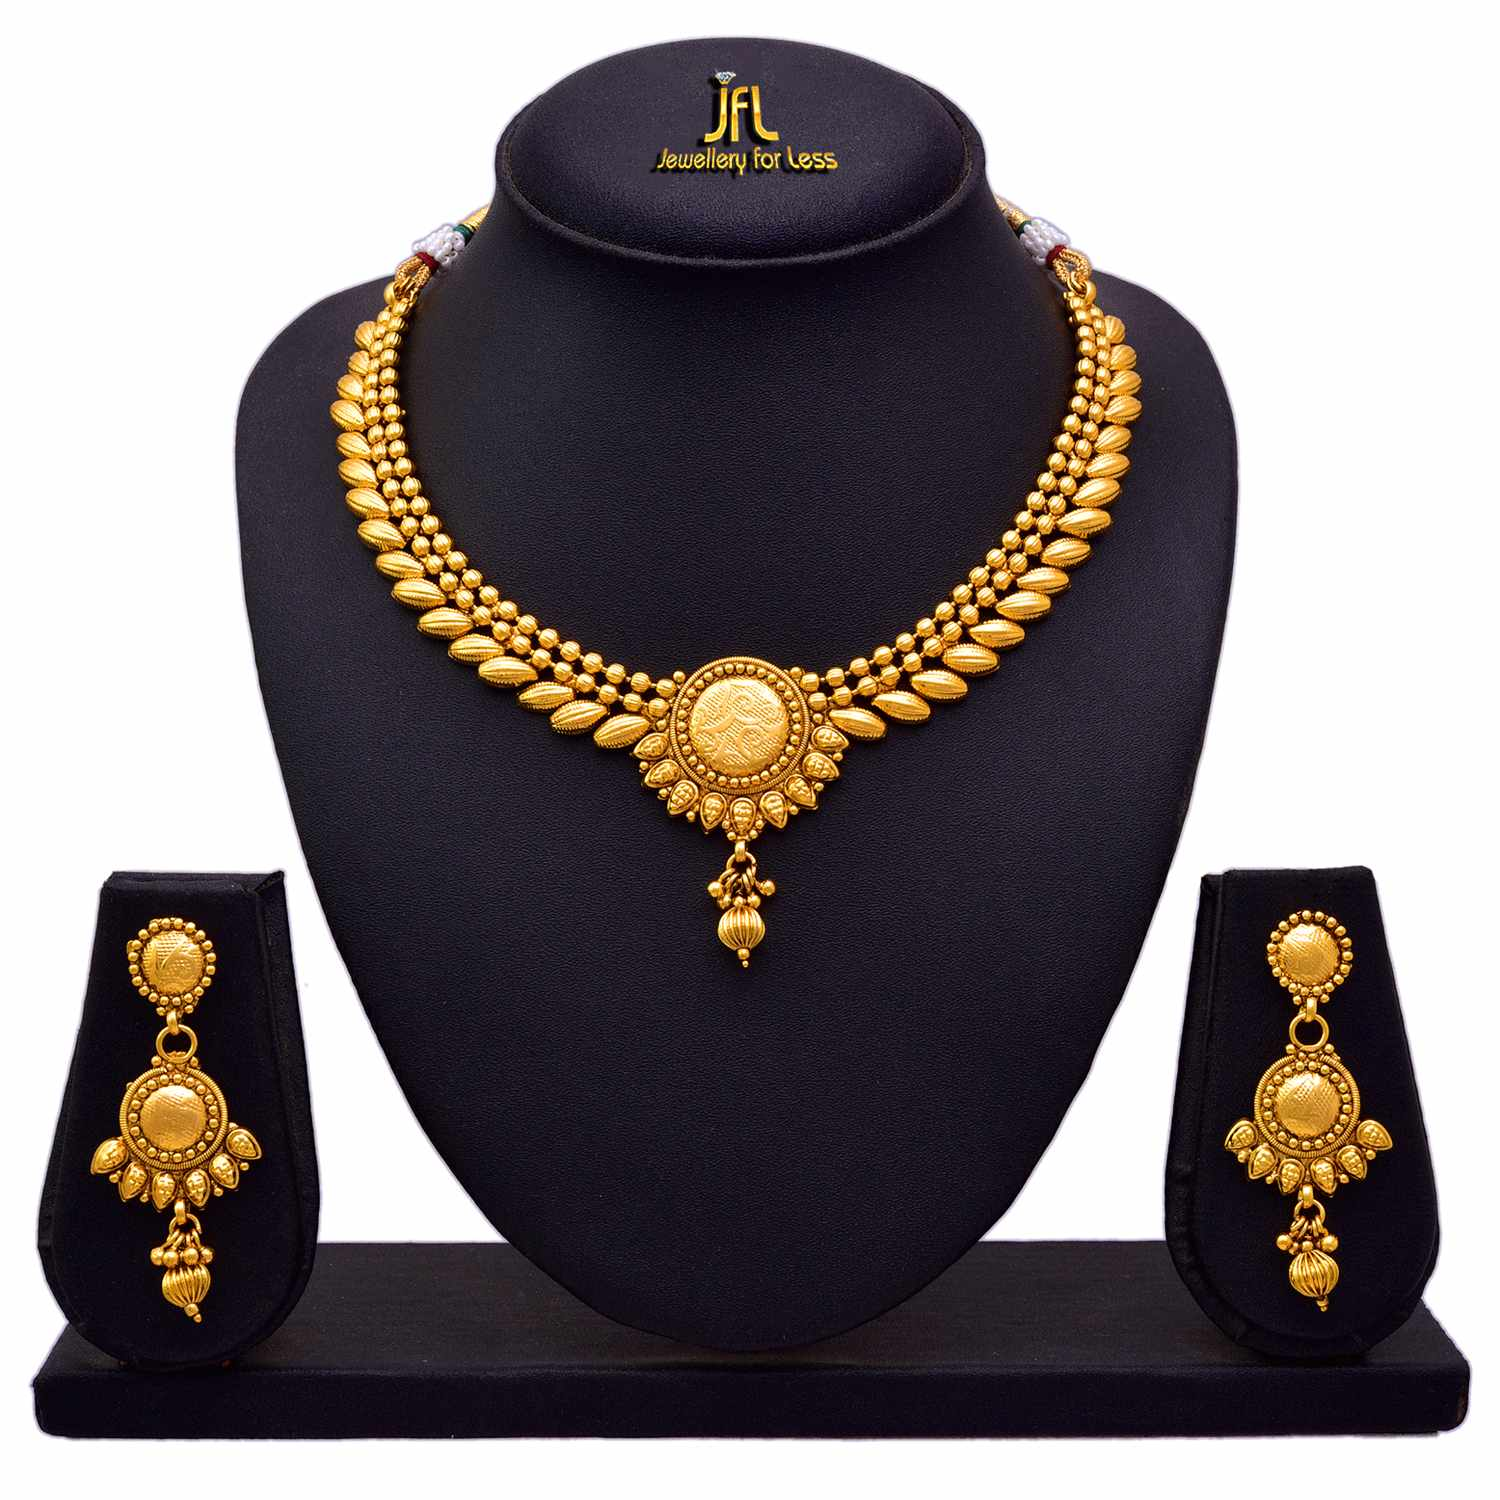 JFL - Traditional Ethnic One Gram Gold Plated Bead Designer Necklace / Jewellery Set with Earring for Women & Girls